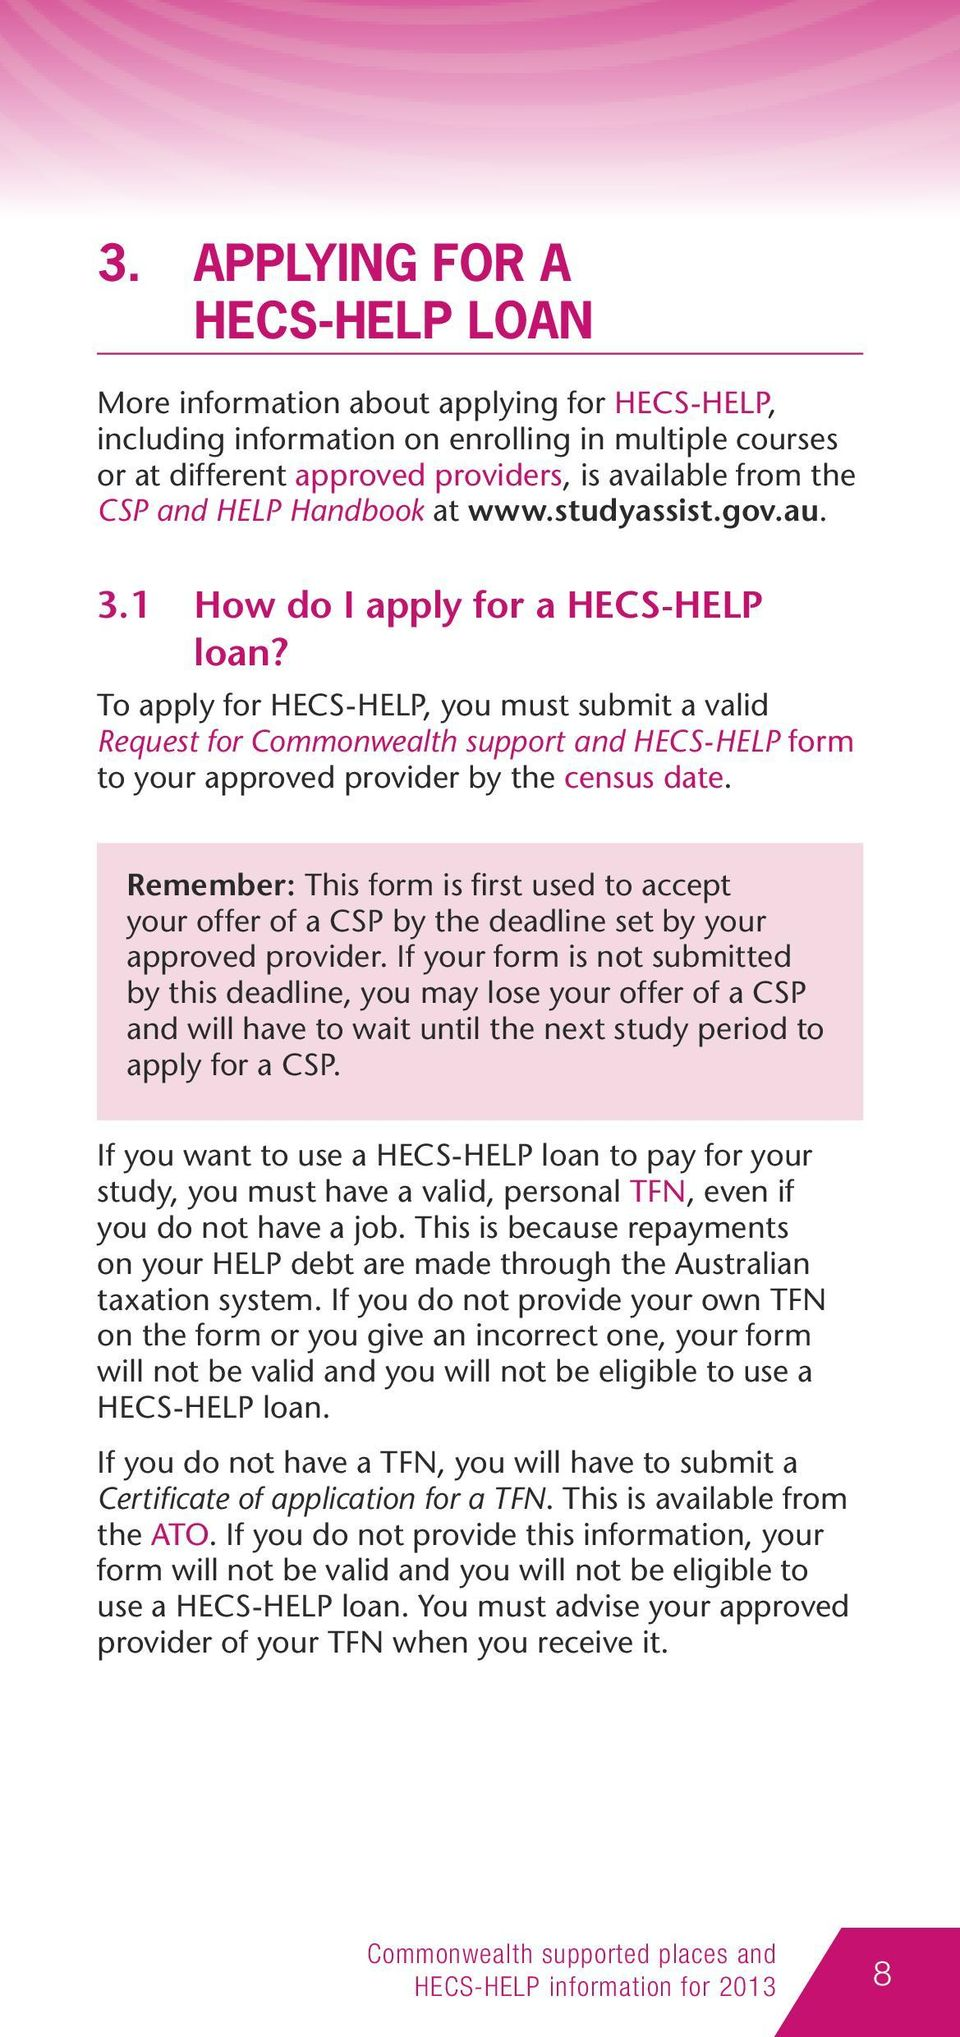 To apply for HECS-HELP, you must submit a valid Request for Commonwealth support and HECS-HELP form to your approved provider by the census date.